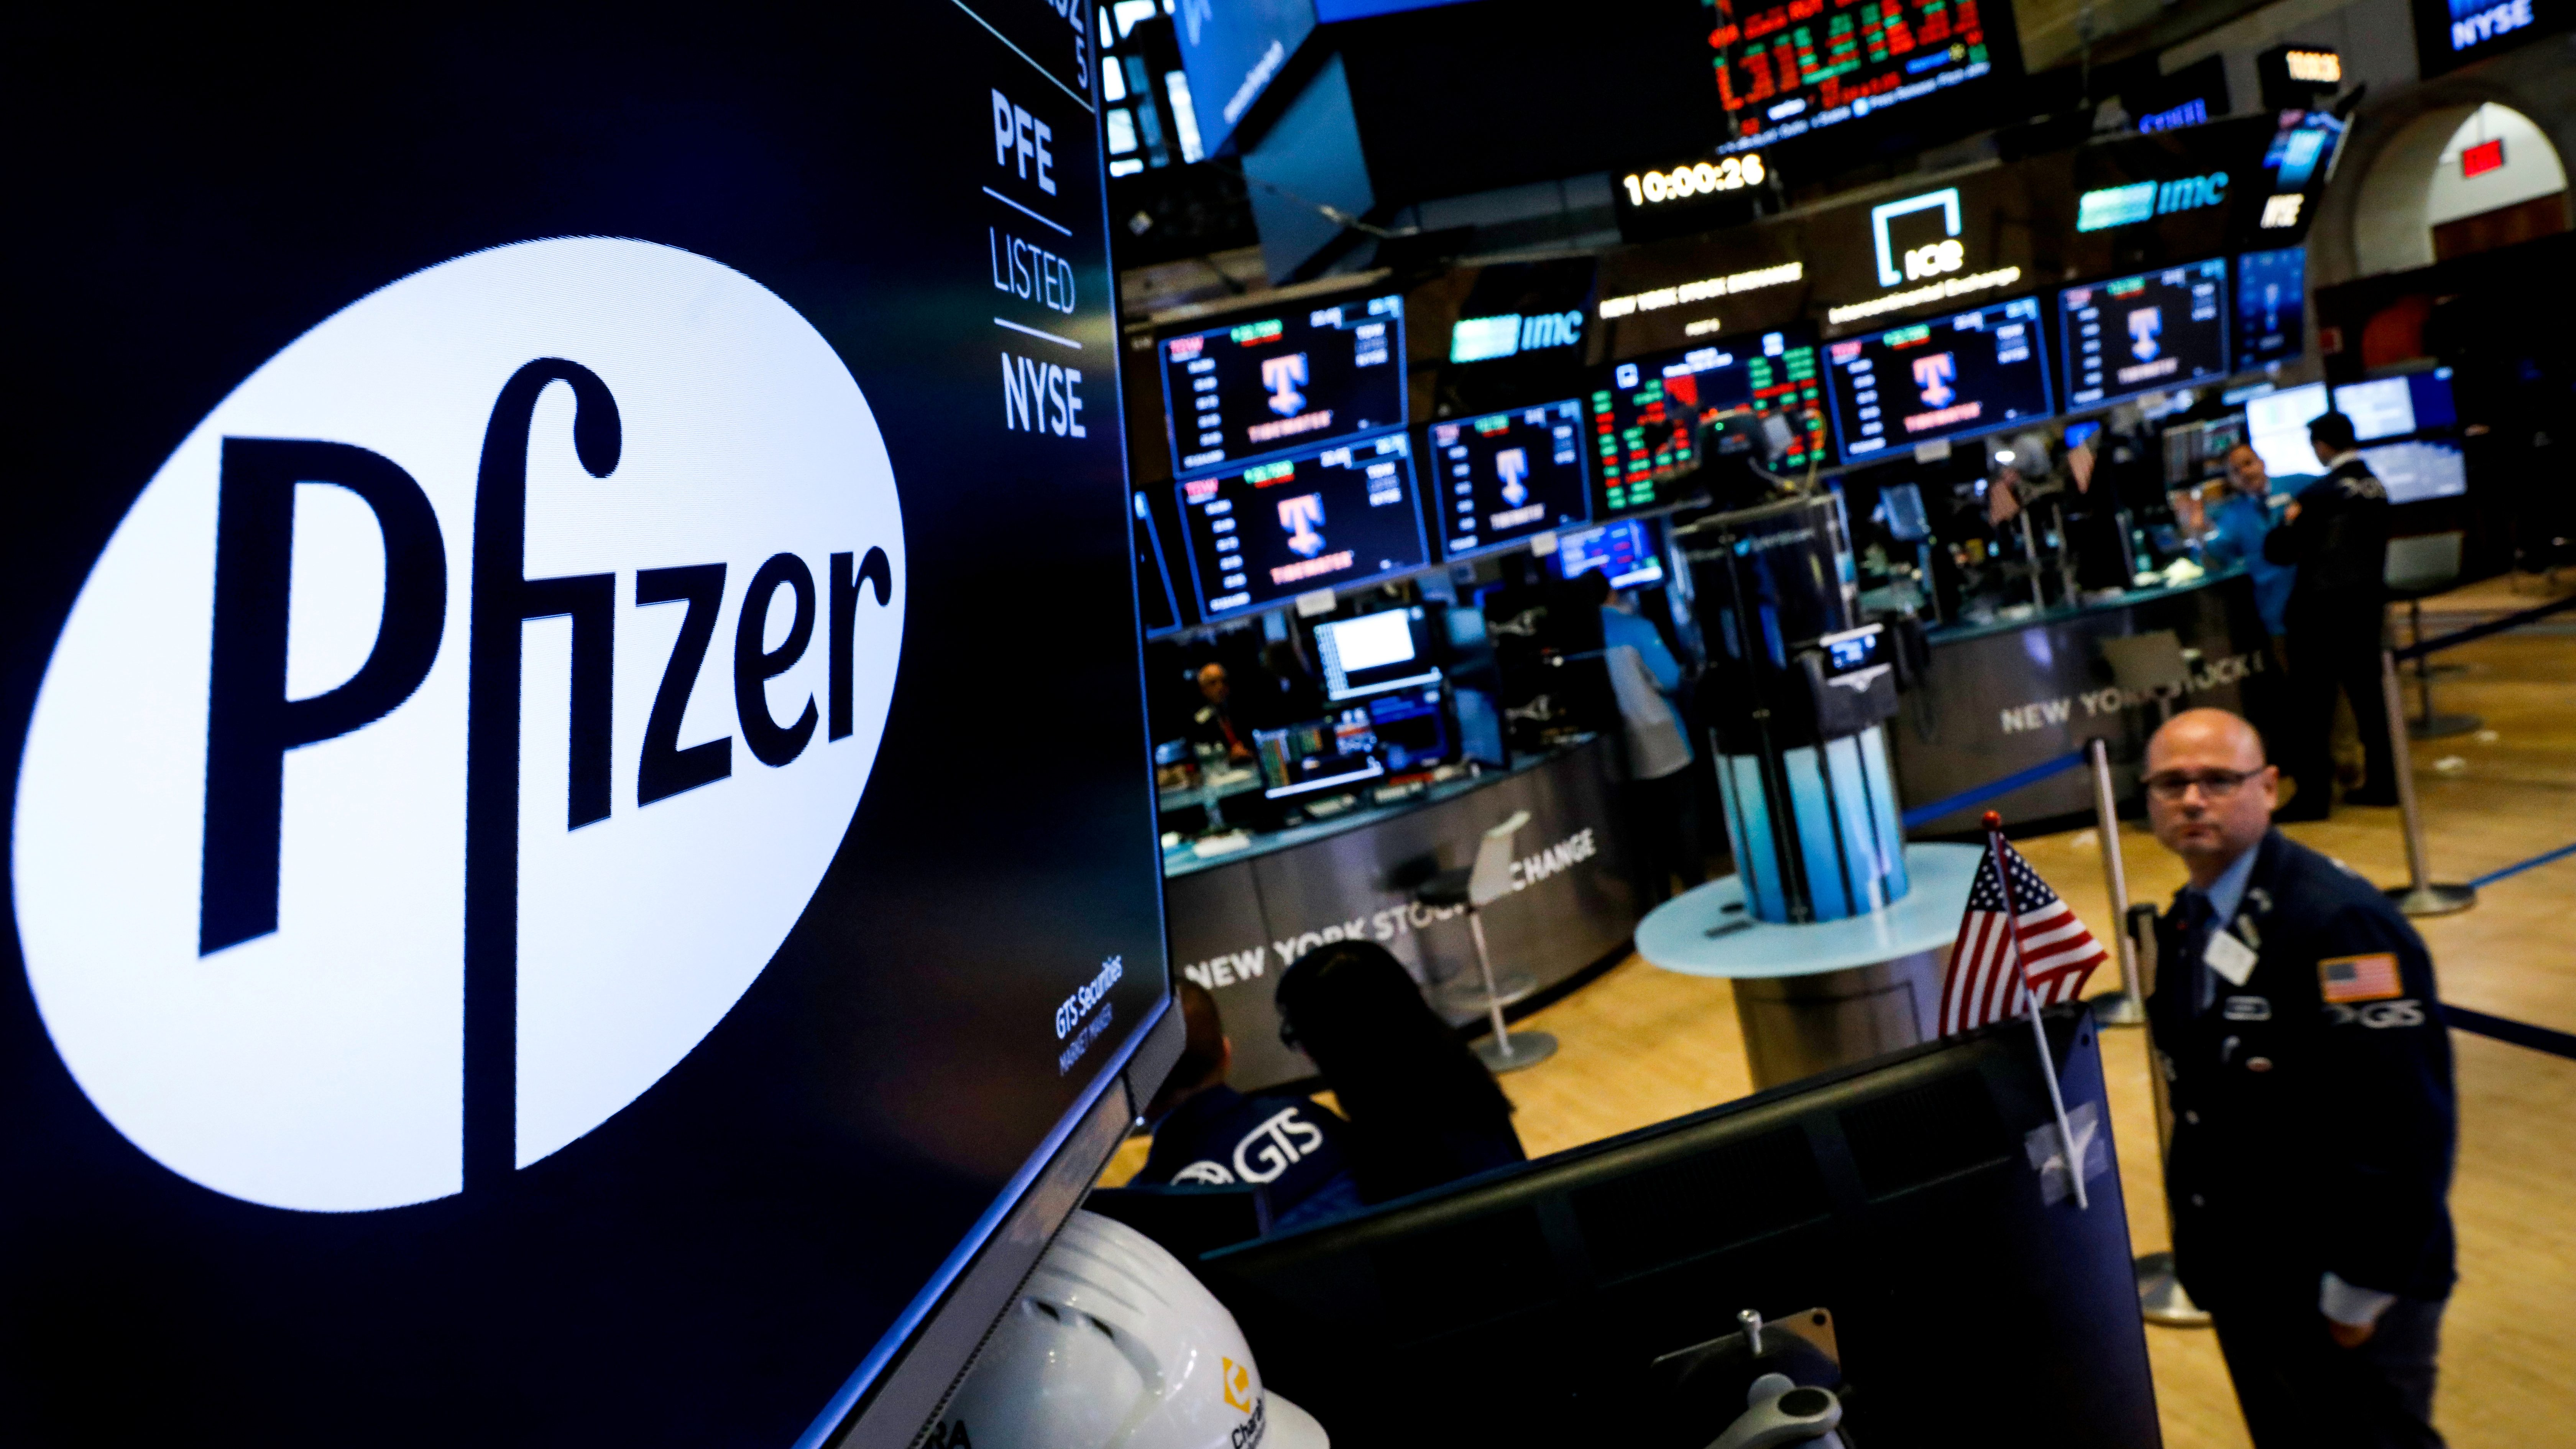 A logo for Pfizer is displayed on a monitor on the floor at the New York Stock Exchange in New York, U.S., July 29, 2019.